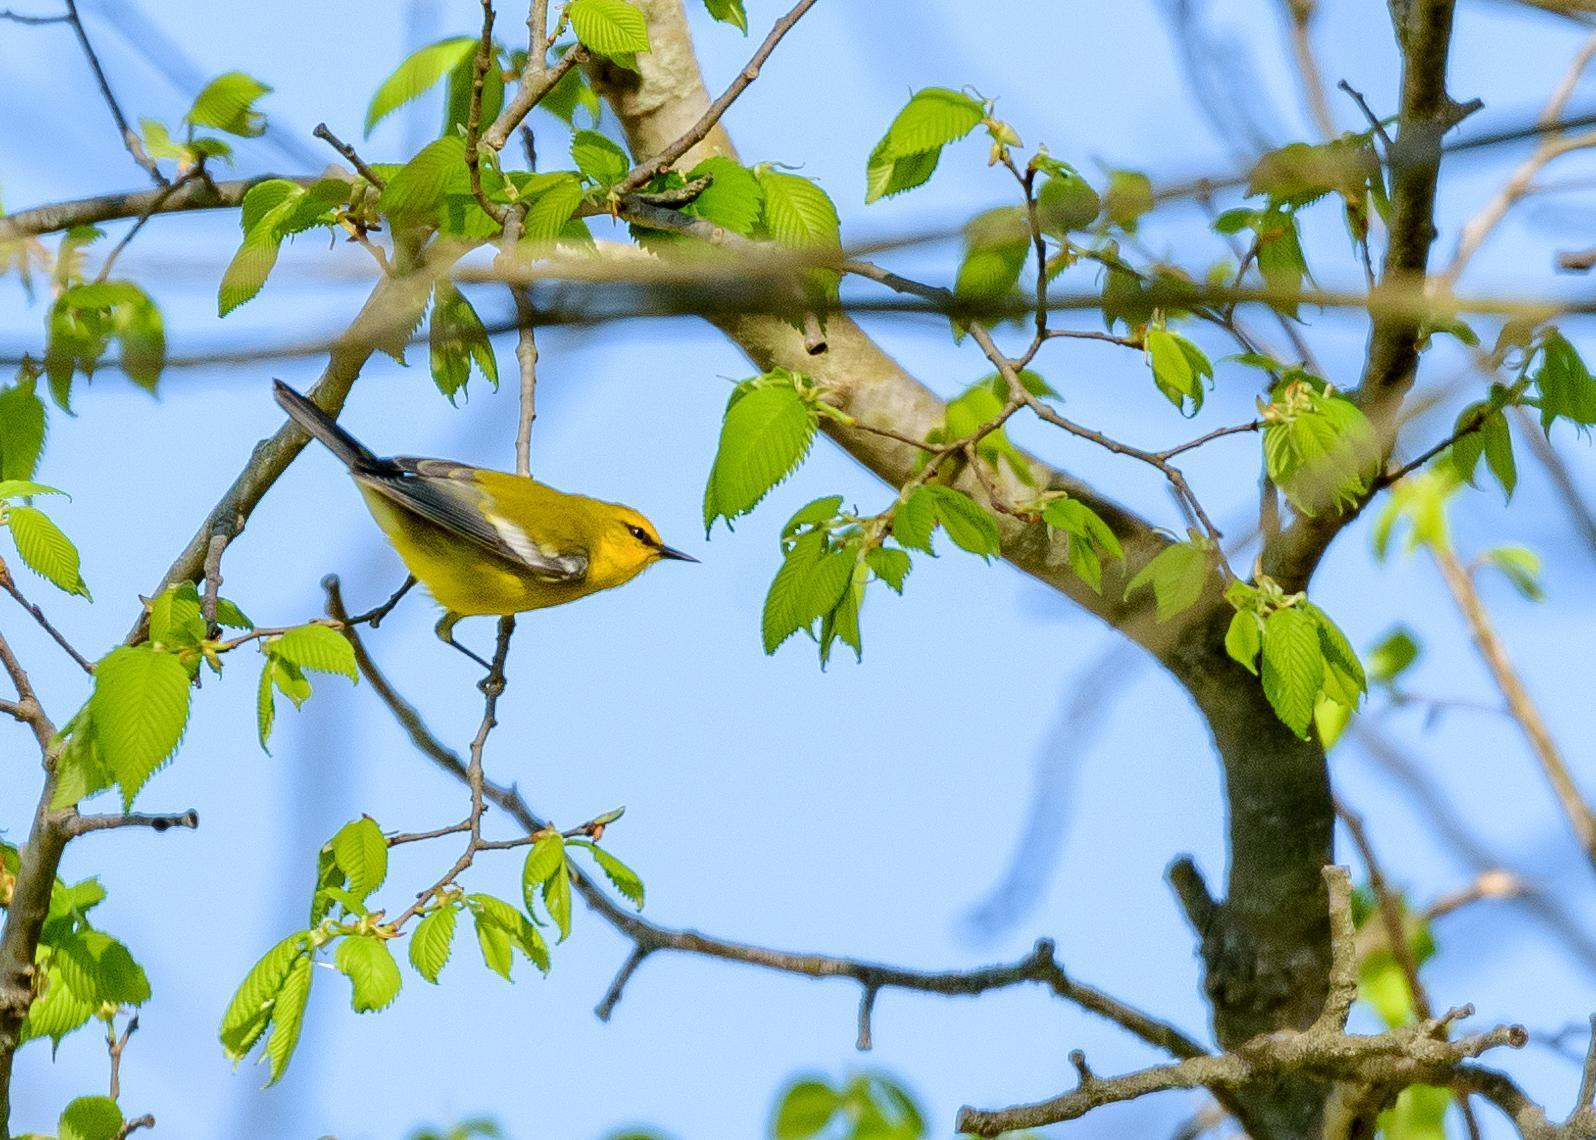 Blue-winged Warbler Photo by Keshava Mysore